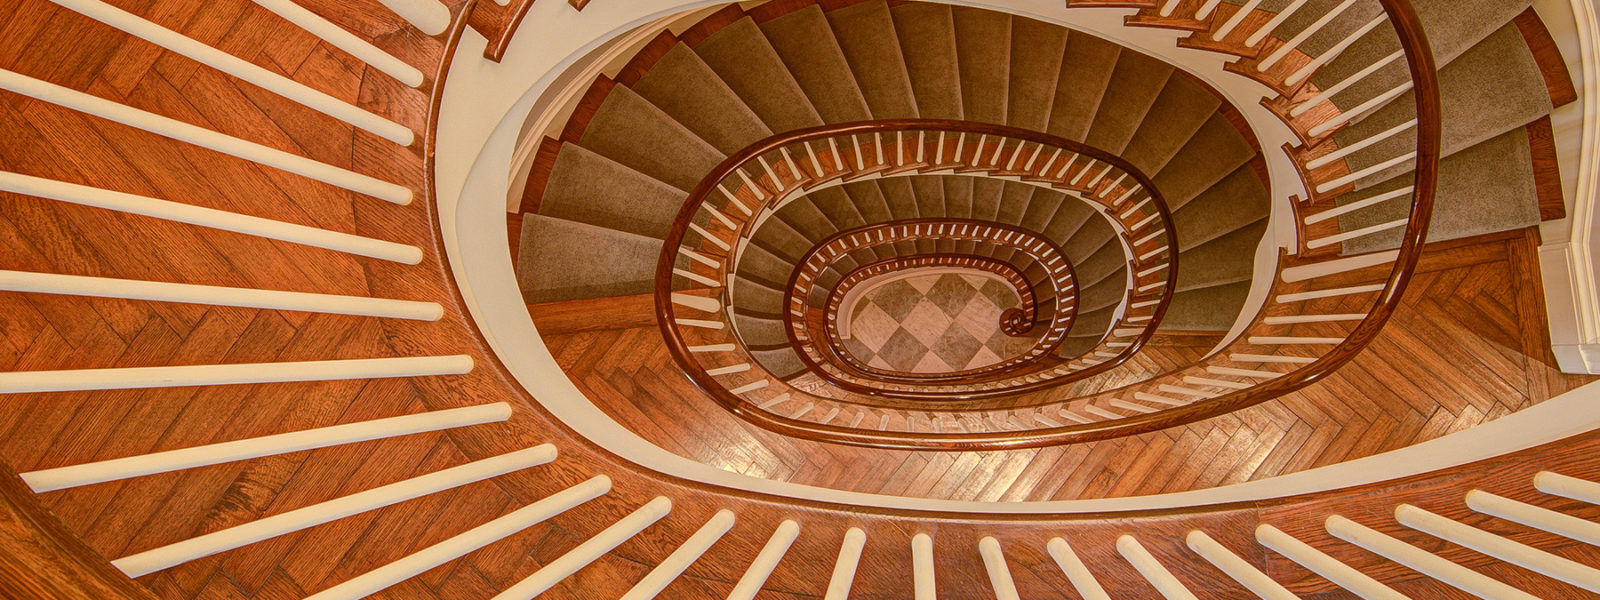 Elliptical Curved Staircase in New York City Brownstone by Arcways Custom Stairs